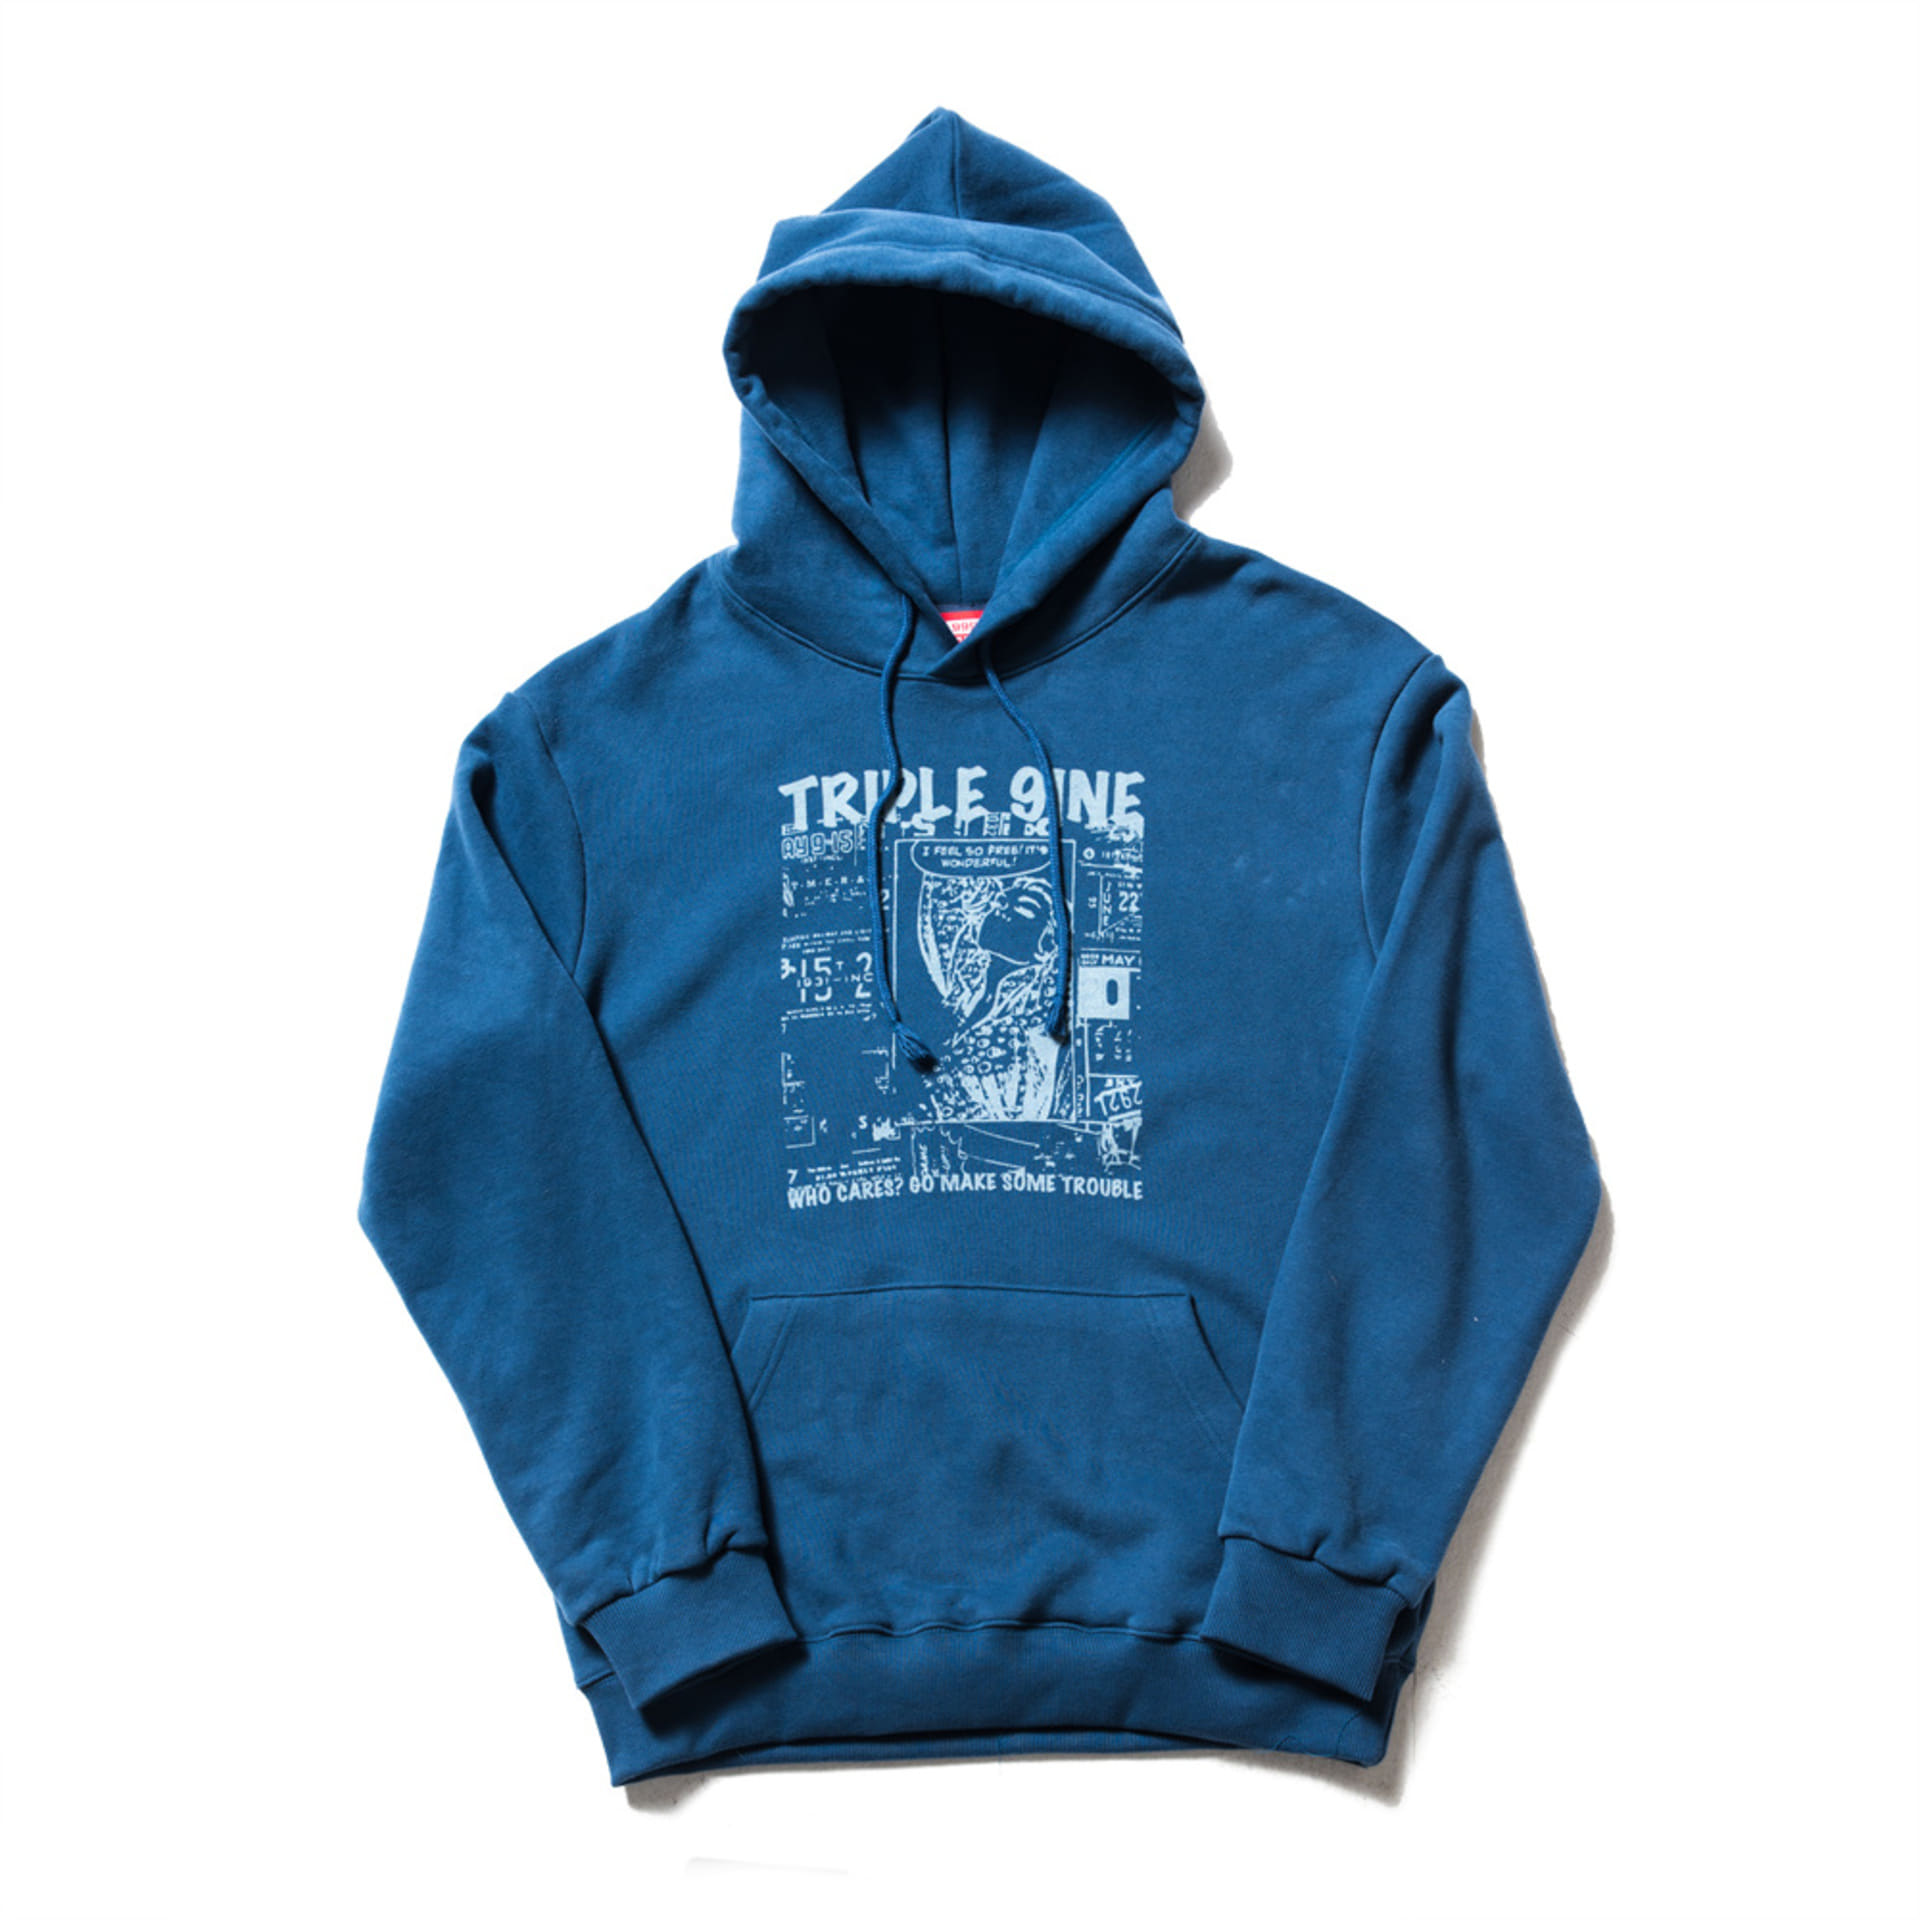 WHO CARES BLUE HOODIE